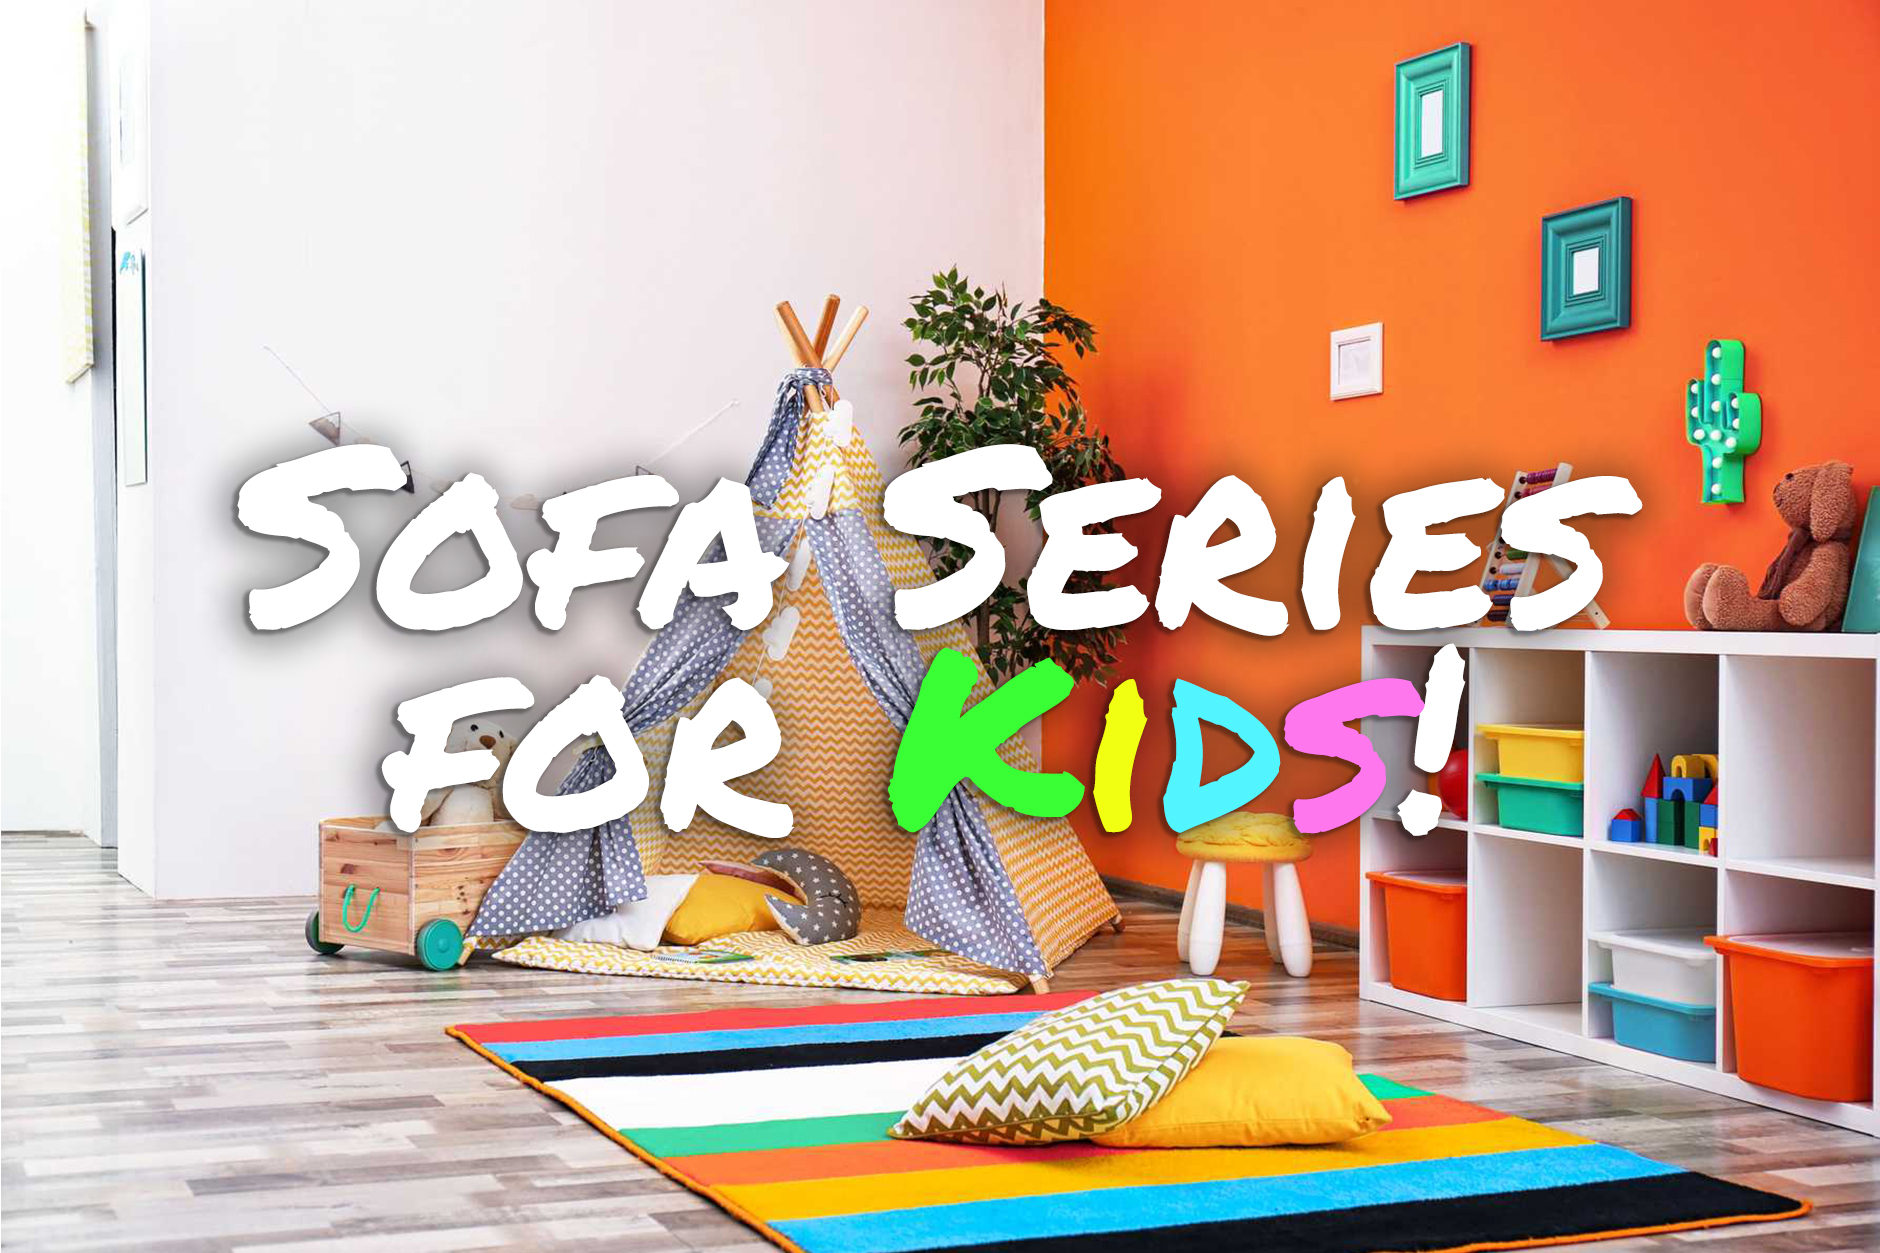 Children's Sofa Seriesv2